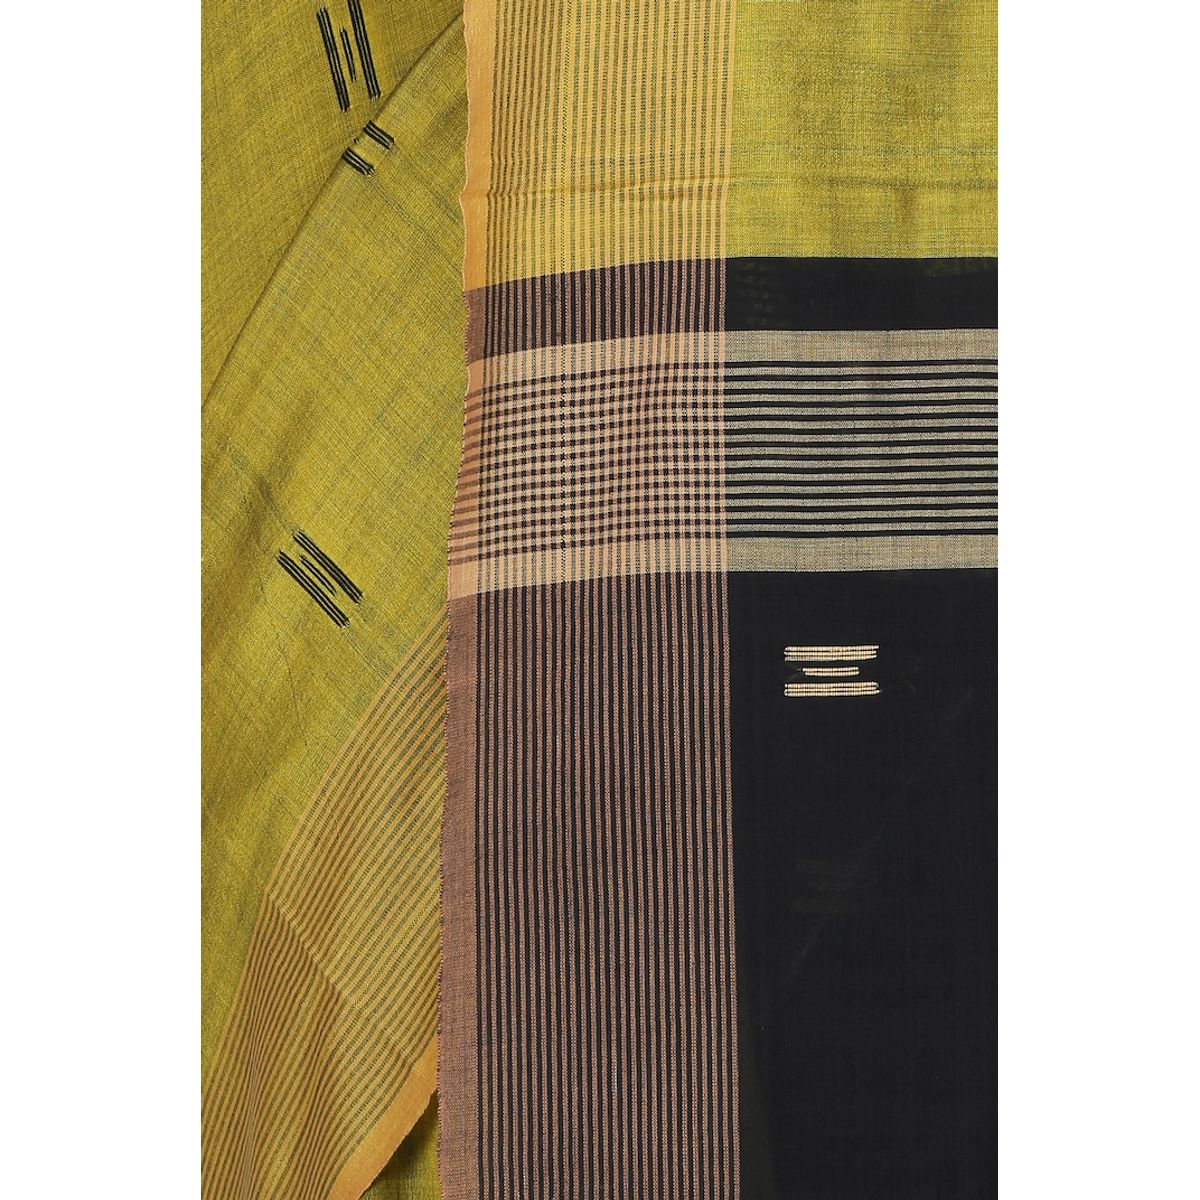 THE WEAVE TRAVELLER HANDLOOM MUSLIN COTTON KHADI SAREE WITH BLOUSE